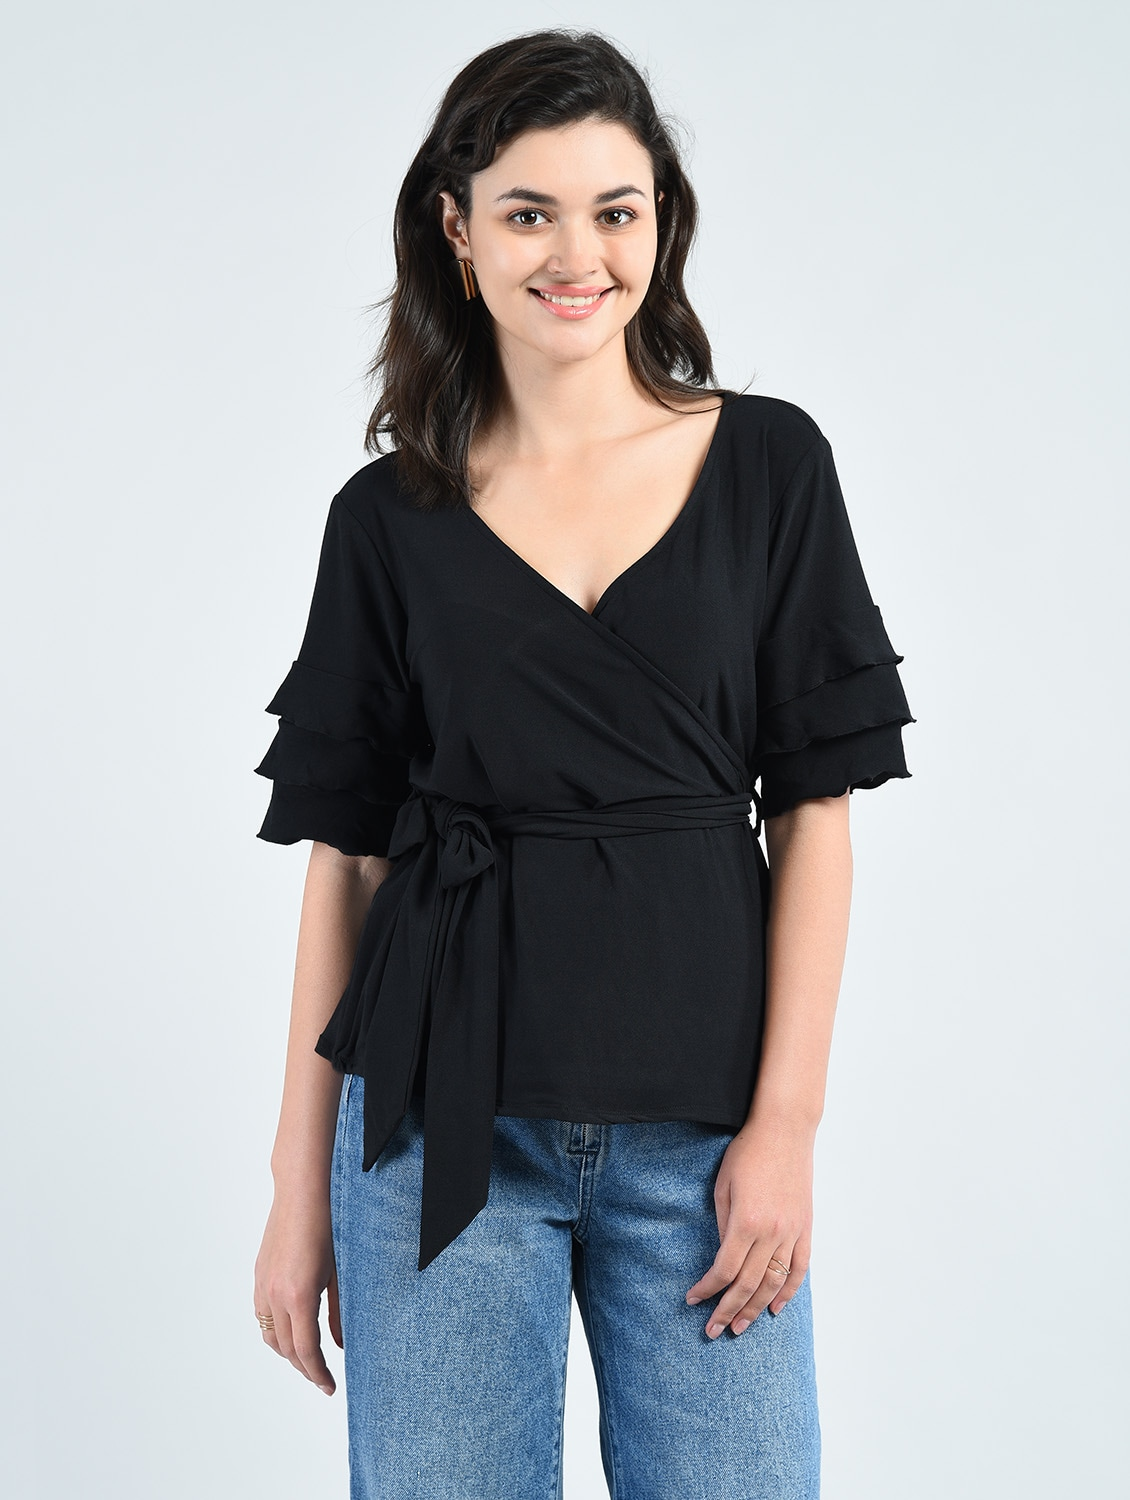 737f1a79f58be Buy Solid Black Wrap Top for Women from Aara for ₹537 at 46% off ...